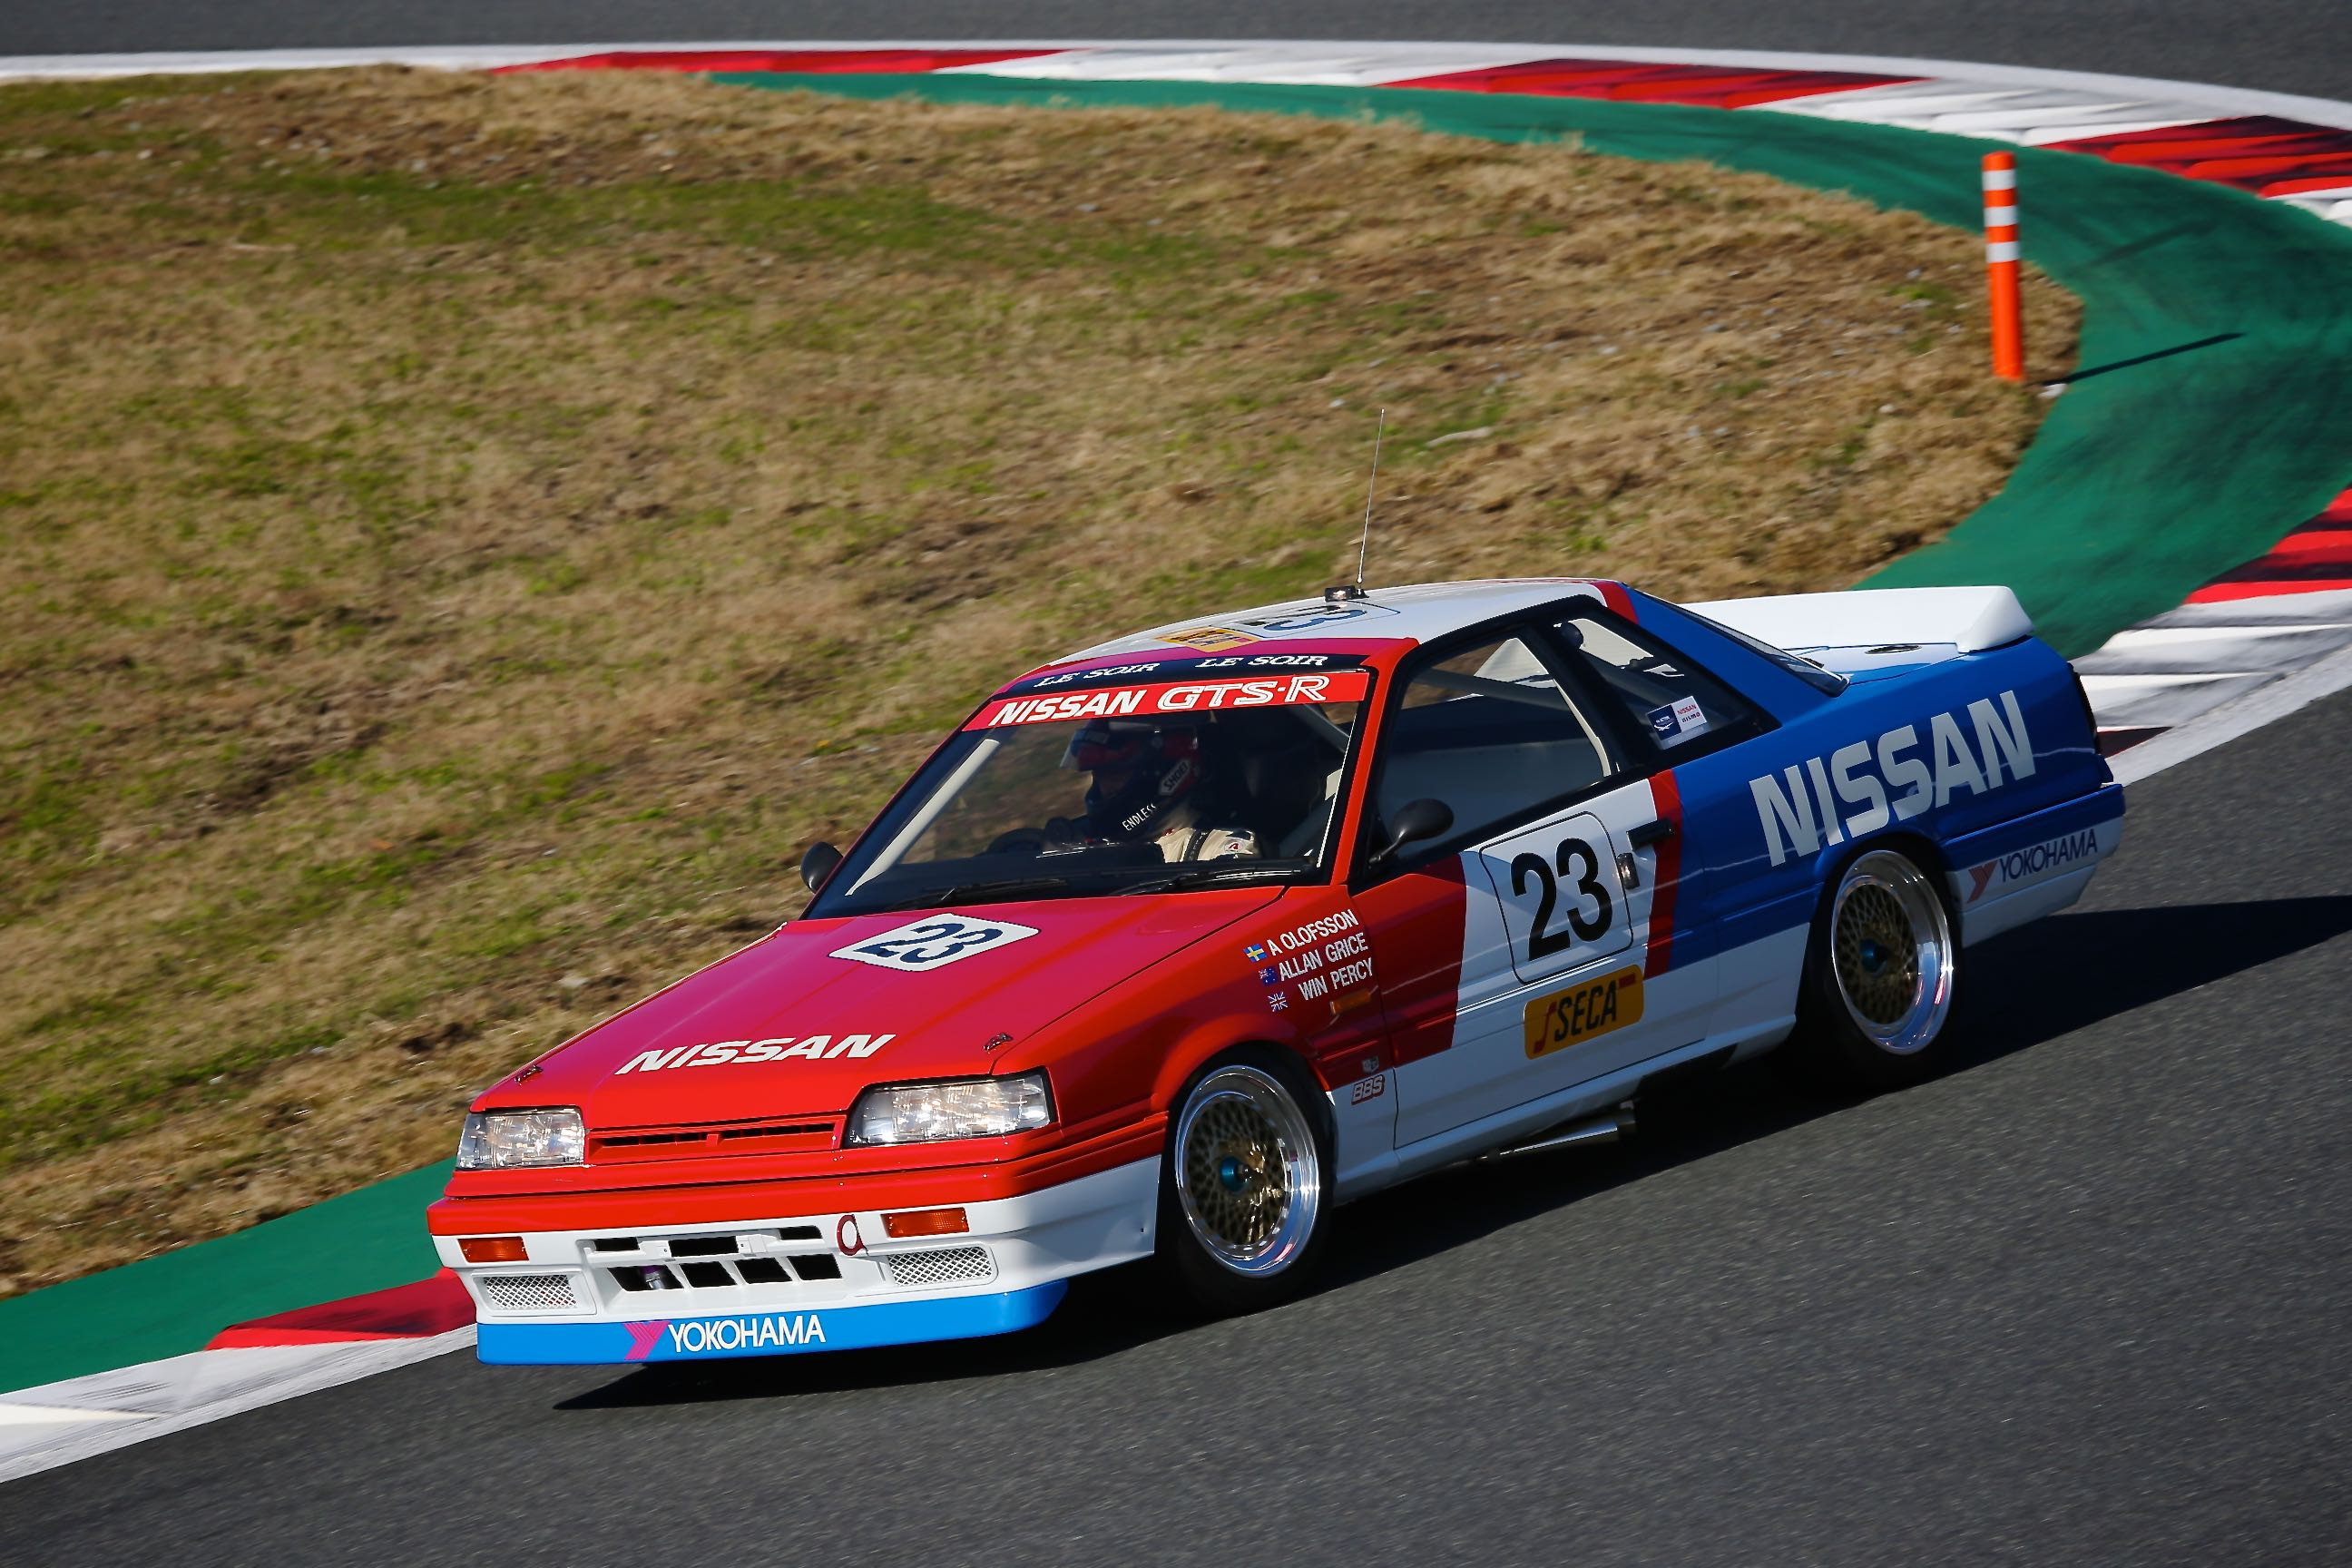 Where Is Nissan Made >> COLLECTIONS: Nissan completes restoration of 24 Hours of Spa R31 Skyline | Japanese Nostalgic Car